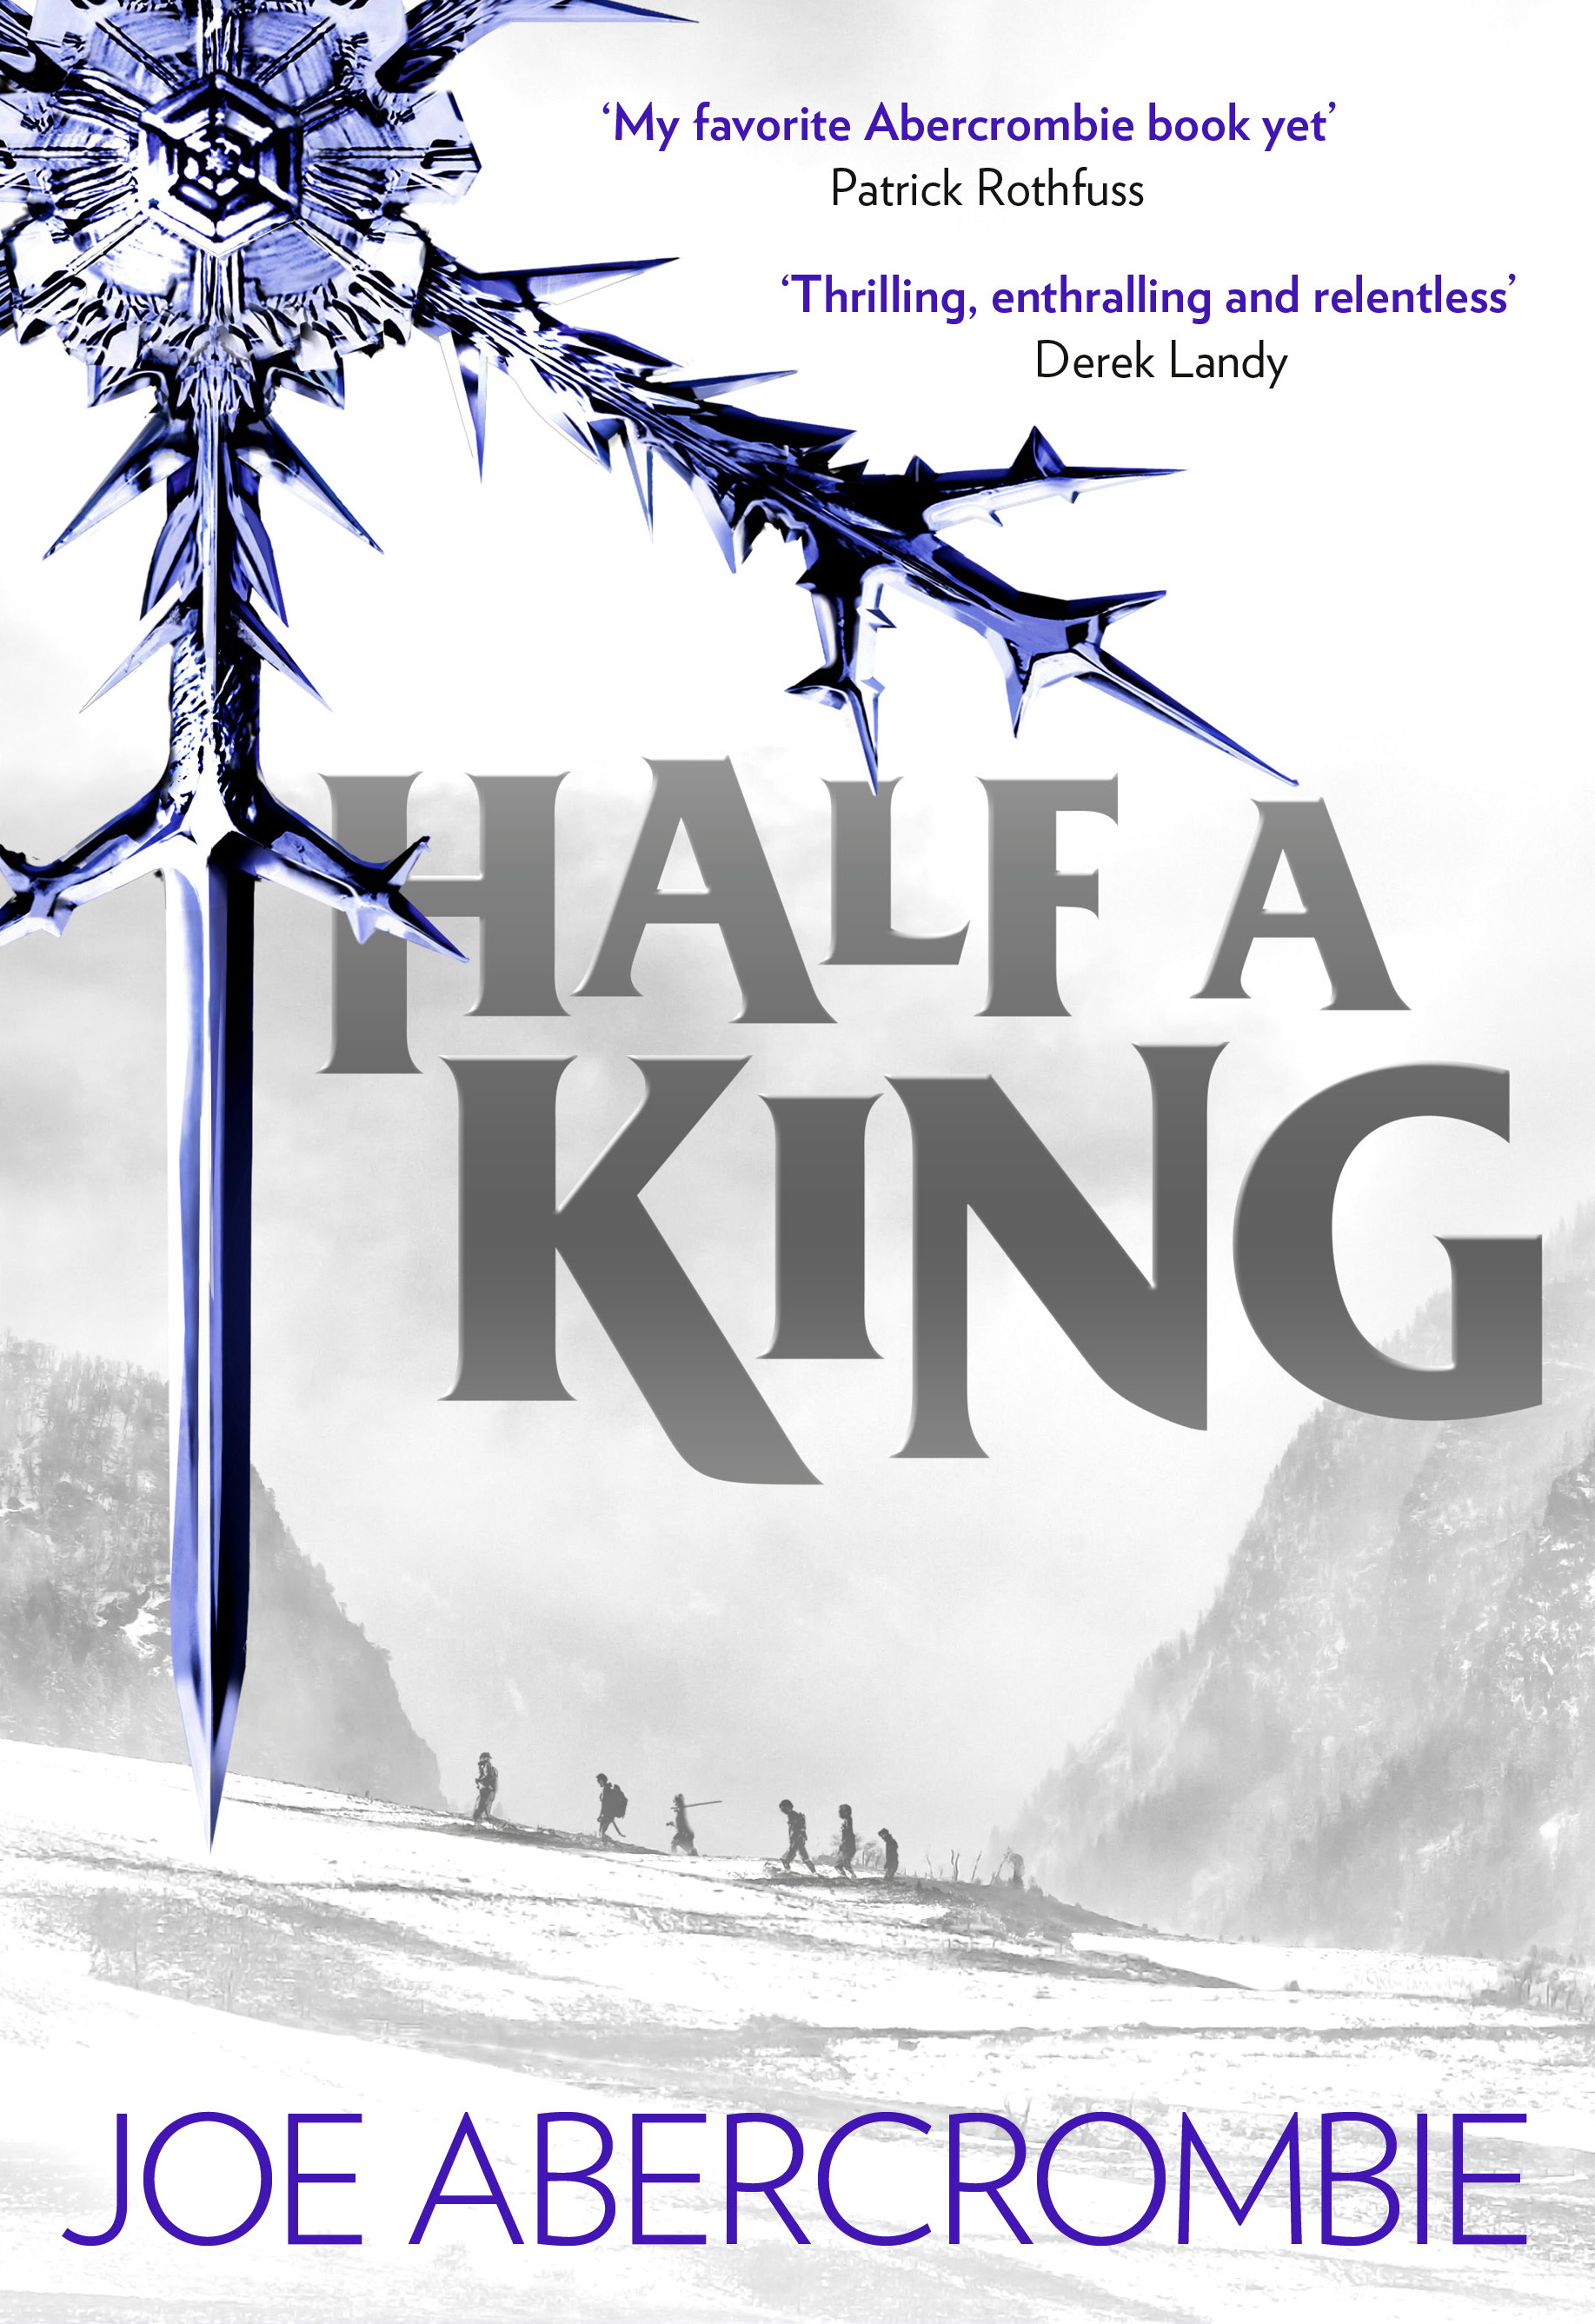 Half-a-King-Quotes-Staggered